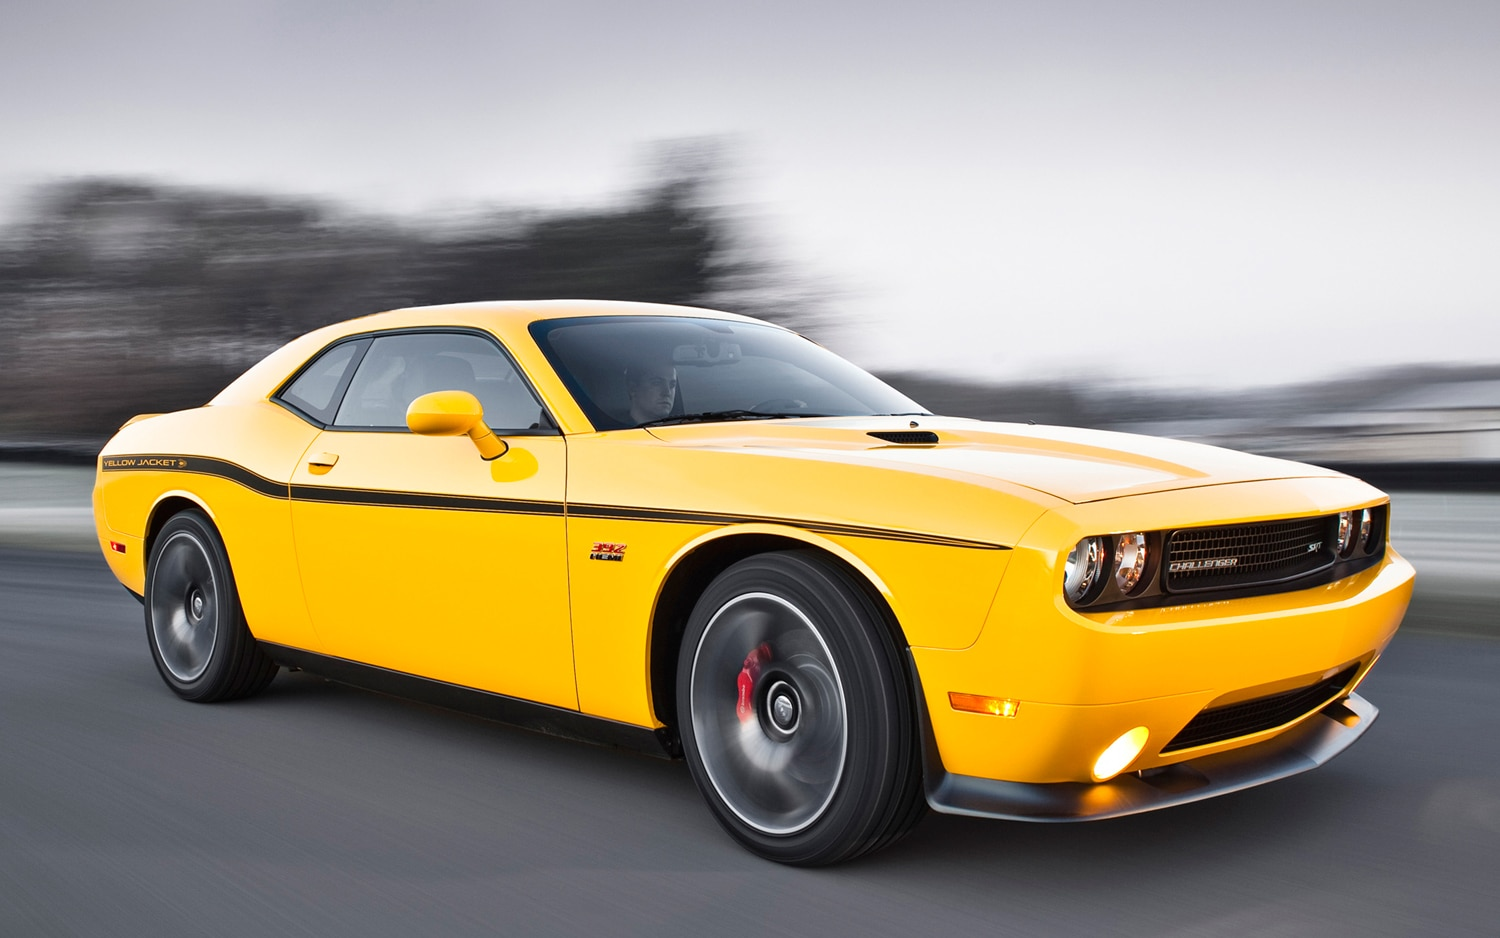 2012 Dodge Challenger SRT8 392 Yellow Jacket Front Three Quarter11